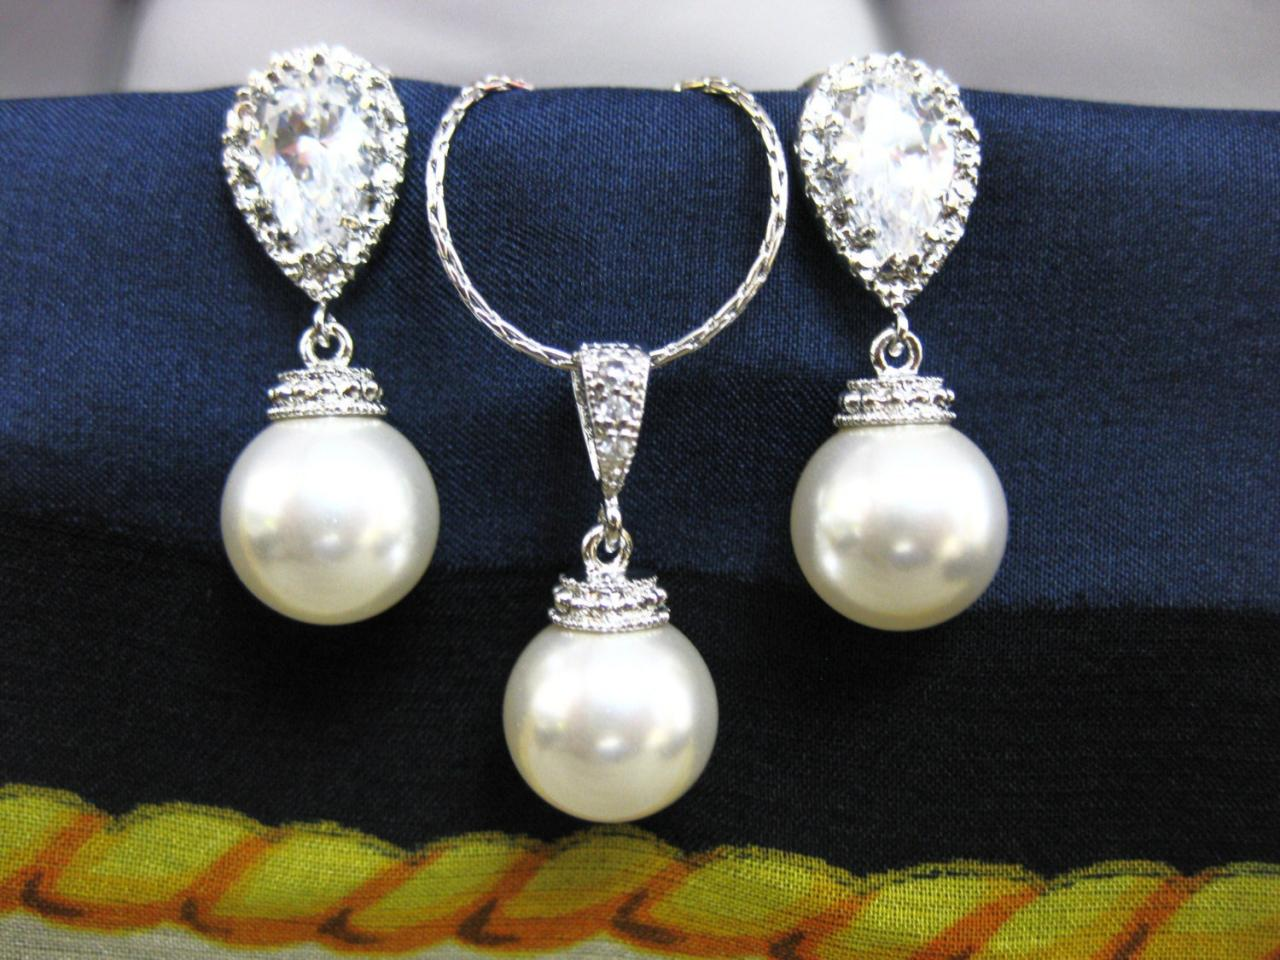 Bridal Pearl Earrings & Necklace Gift Set Wedding Jewelry Bridesmaid Gift Swarovski 10mm Round Pearl Single Pearl Necklace (NE026)